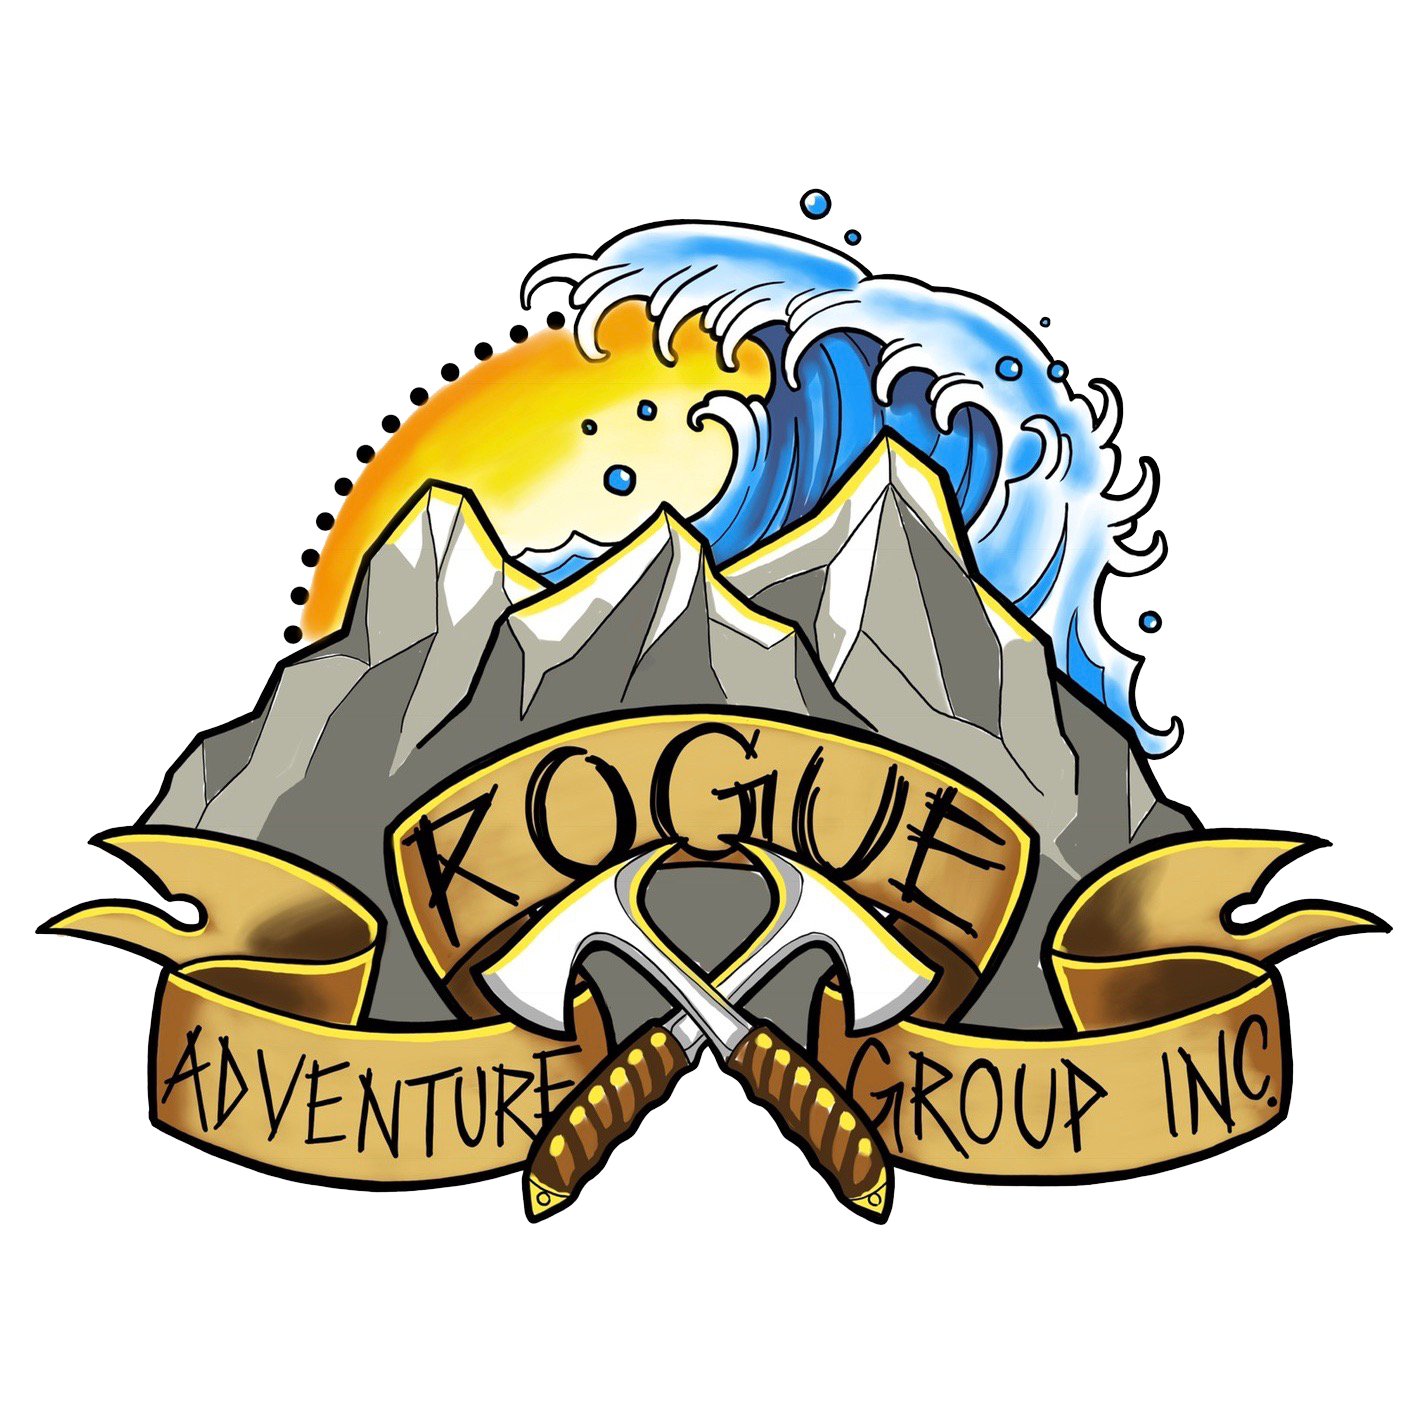 Rogue Adventure Group